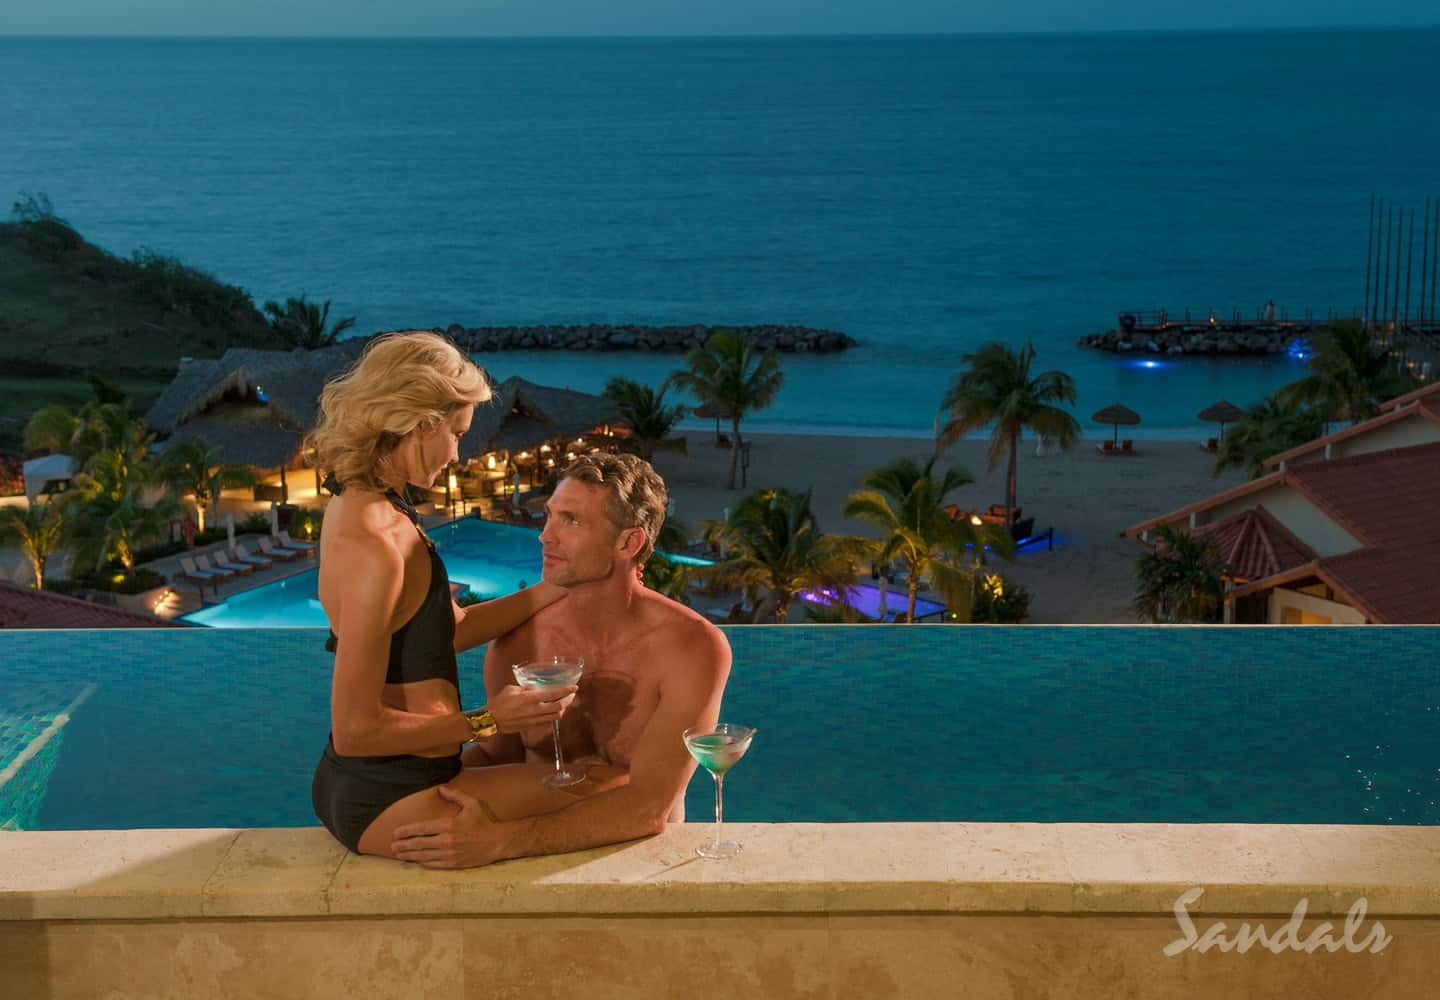 a couple in pool, drinking cocktails and having fun, overseeing a Sandals resort, symbolizing the beauty and joy of booking all inclusive vacations adults only trips